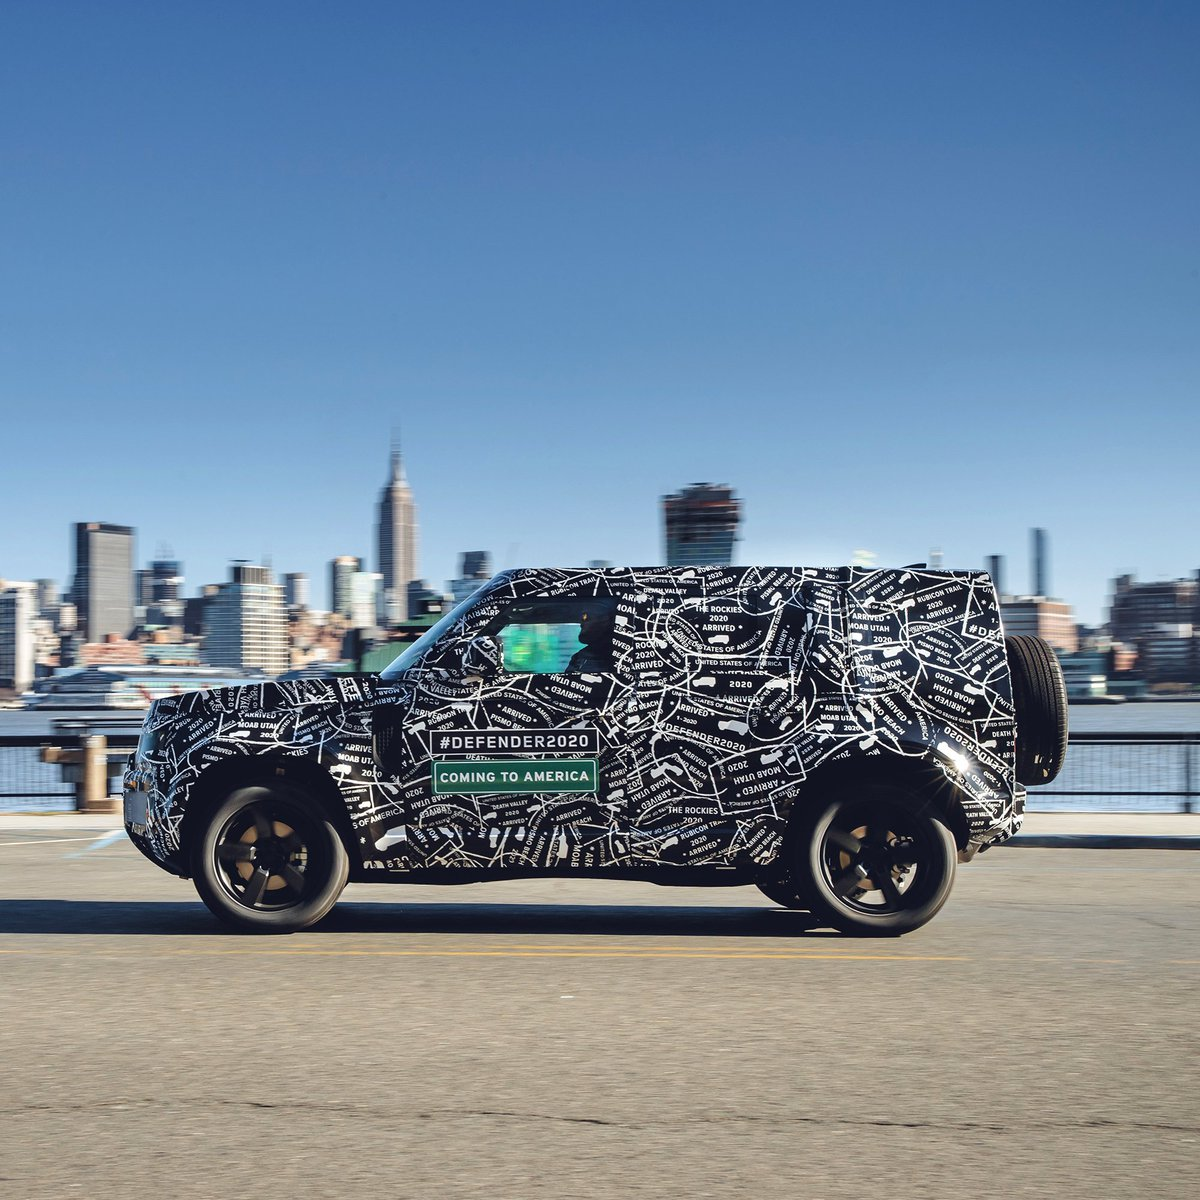 Land Rover Usa On Twitter The All New Land Rover Defender Returns